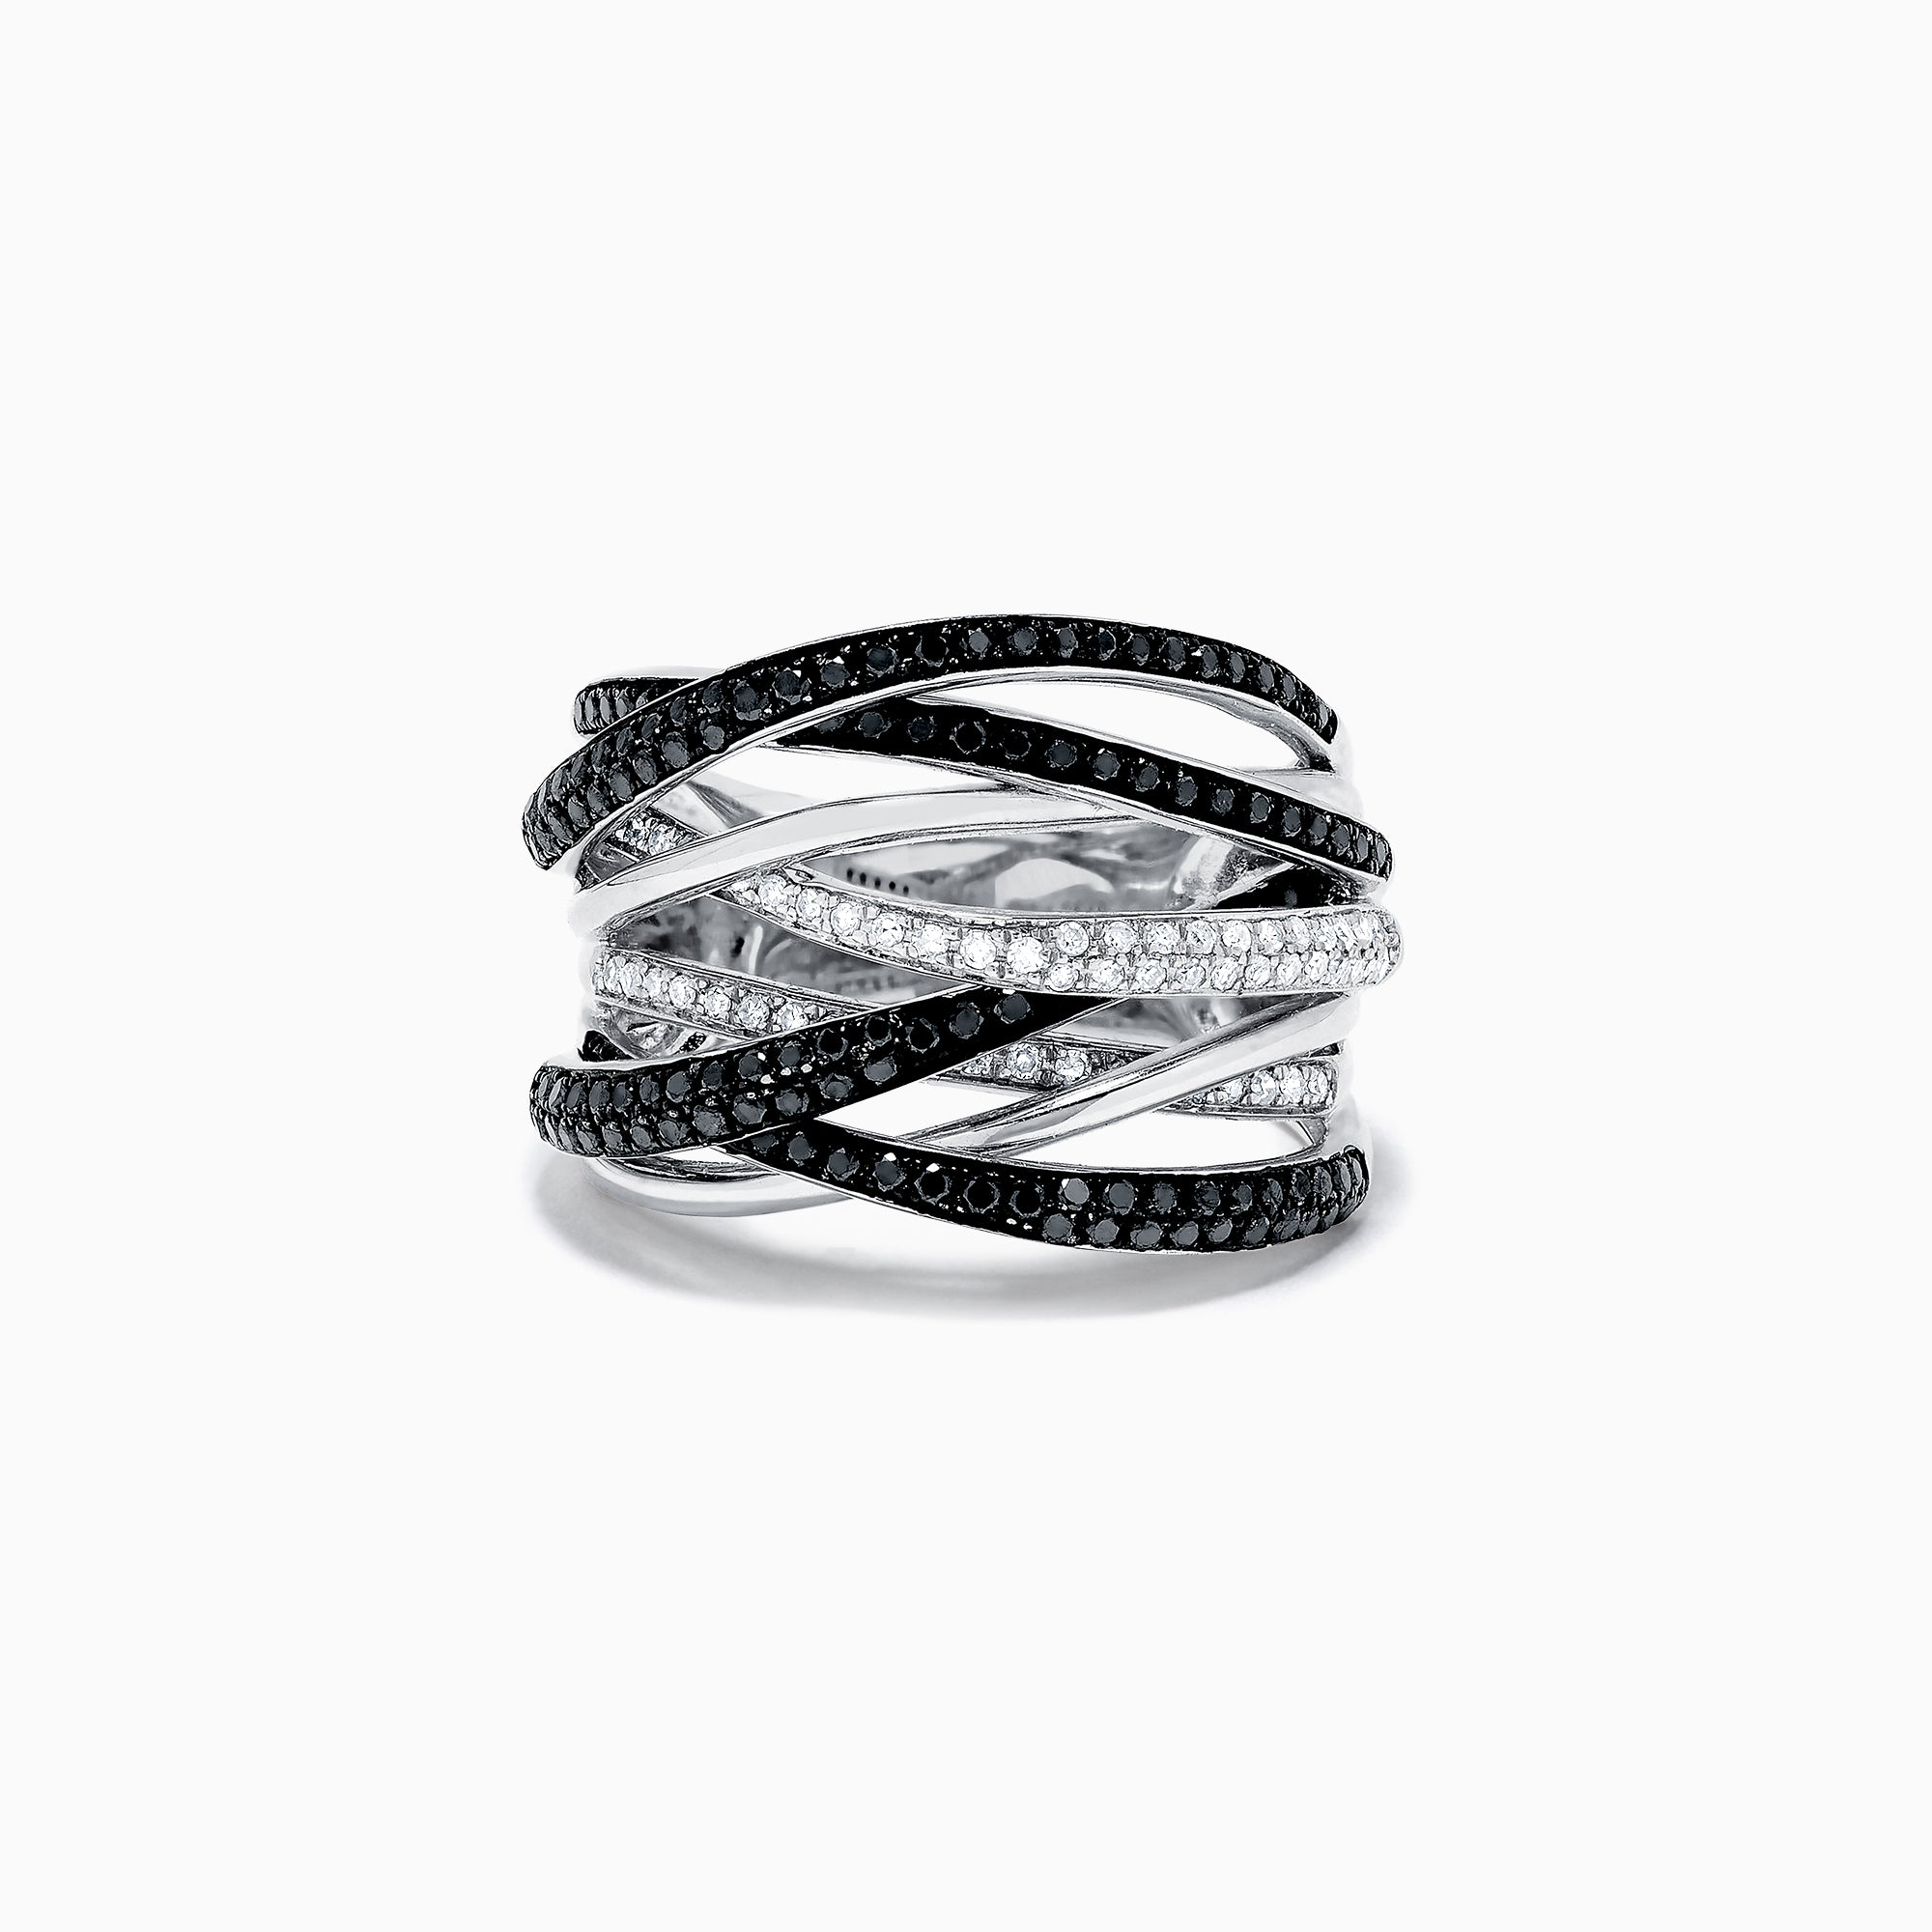 Effy 14K White Gold Black and White Diamond Ring, 0.74 TCW